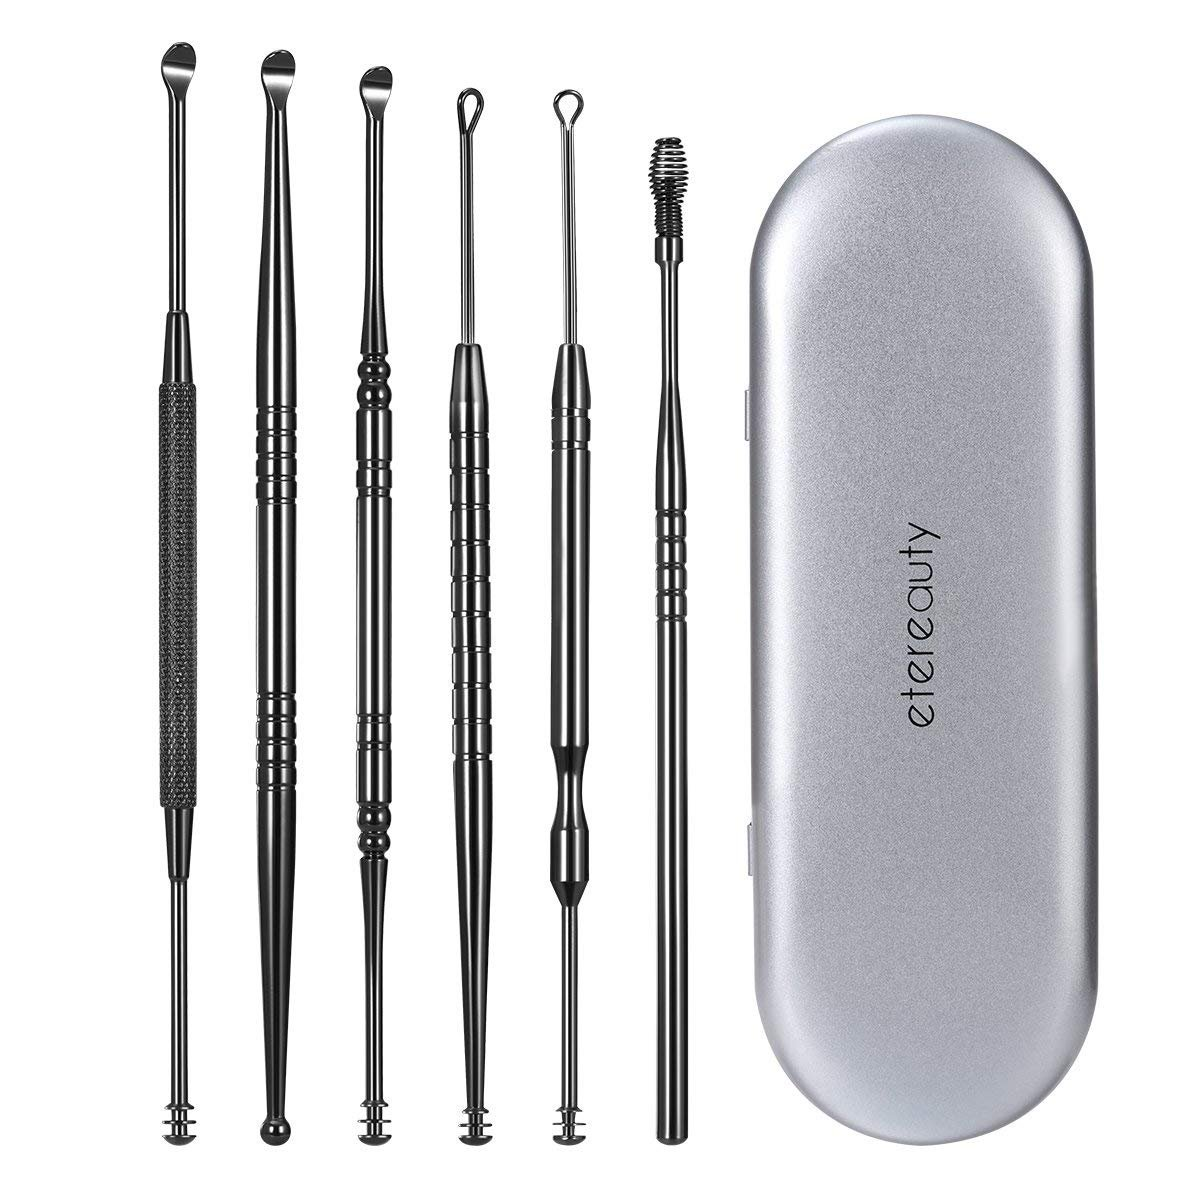 Ear Wax Remover, ETEREAUTY Ear Cleaner, Ear Pick with Storage Box Stainless Steel 6 Pieces